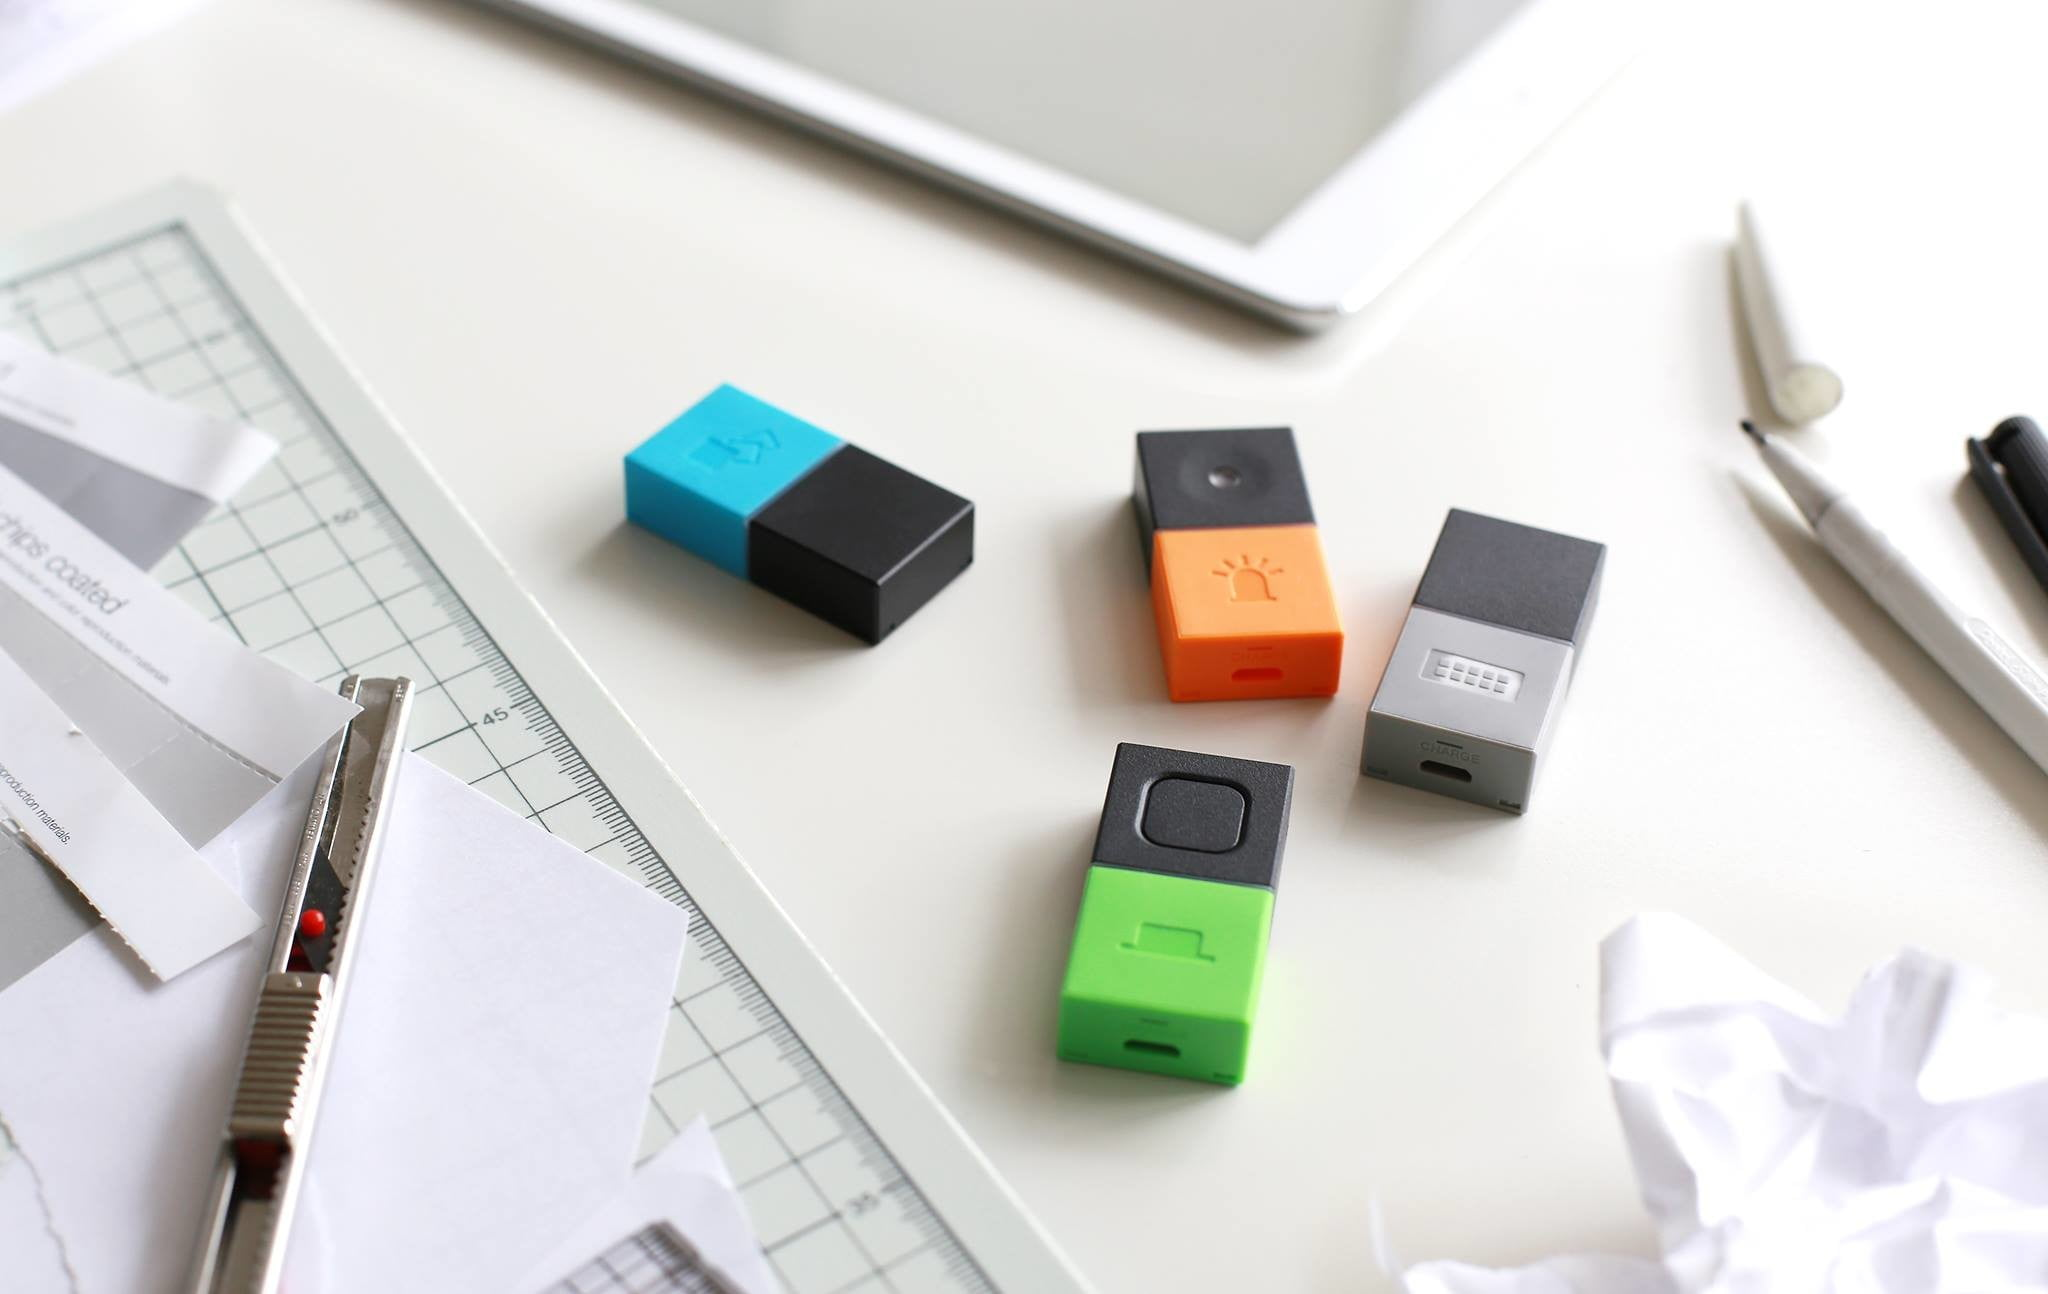 Turn anything in your home into a connected device with Mesh